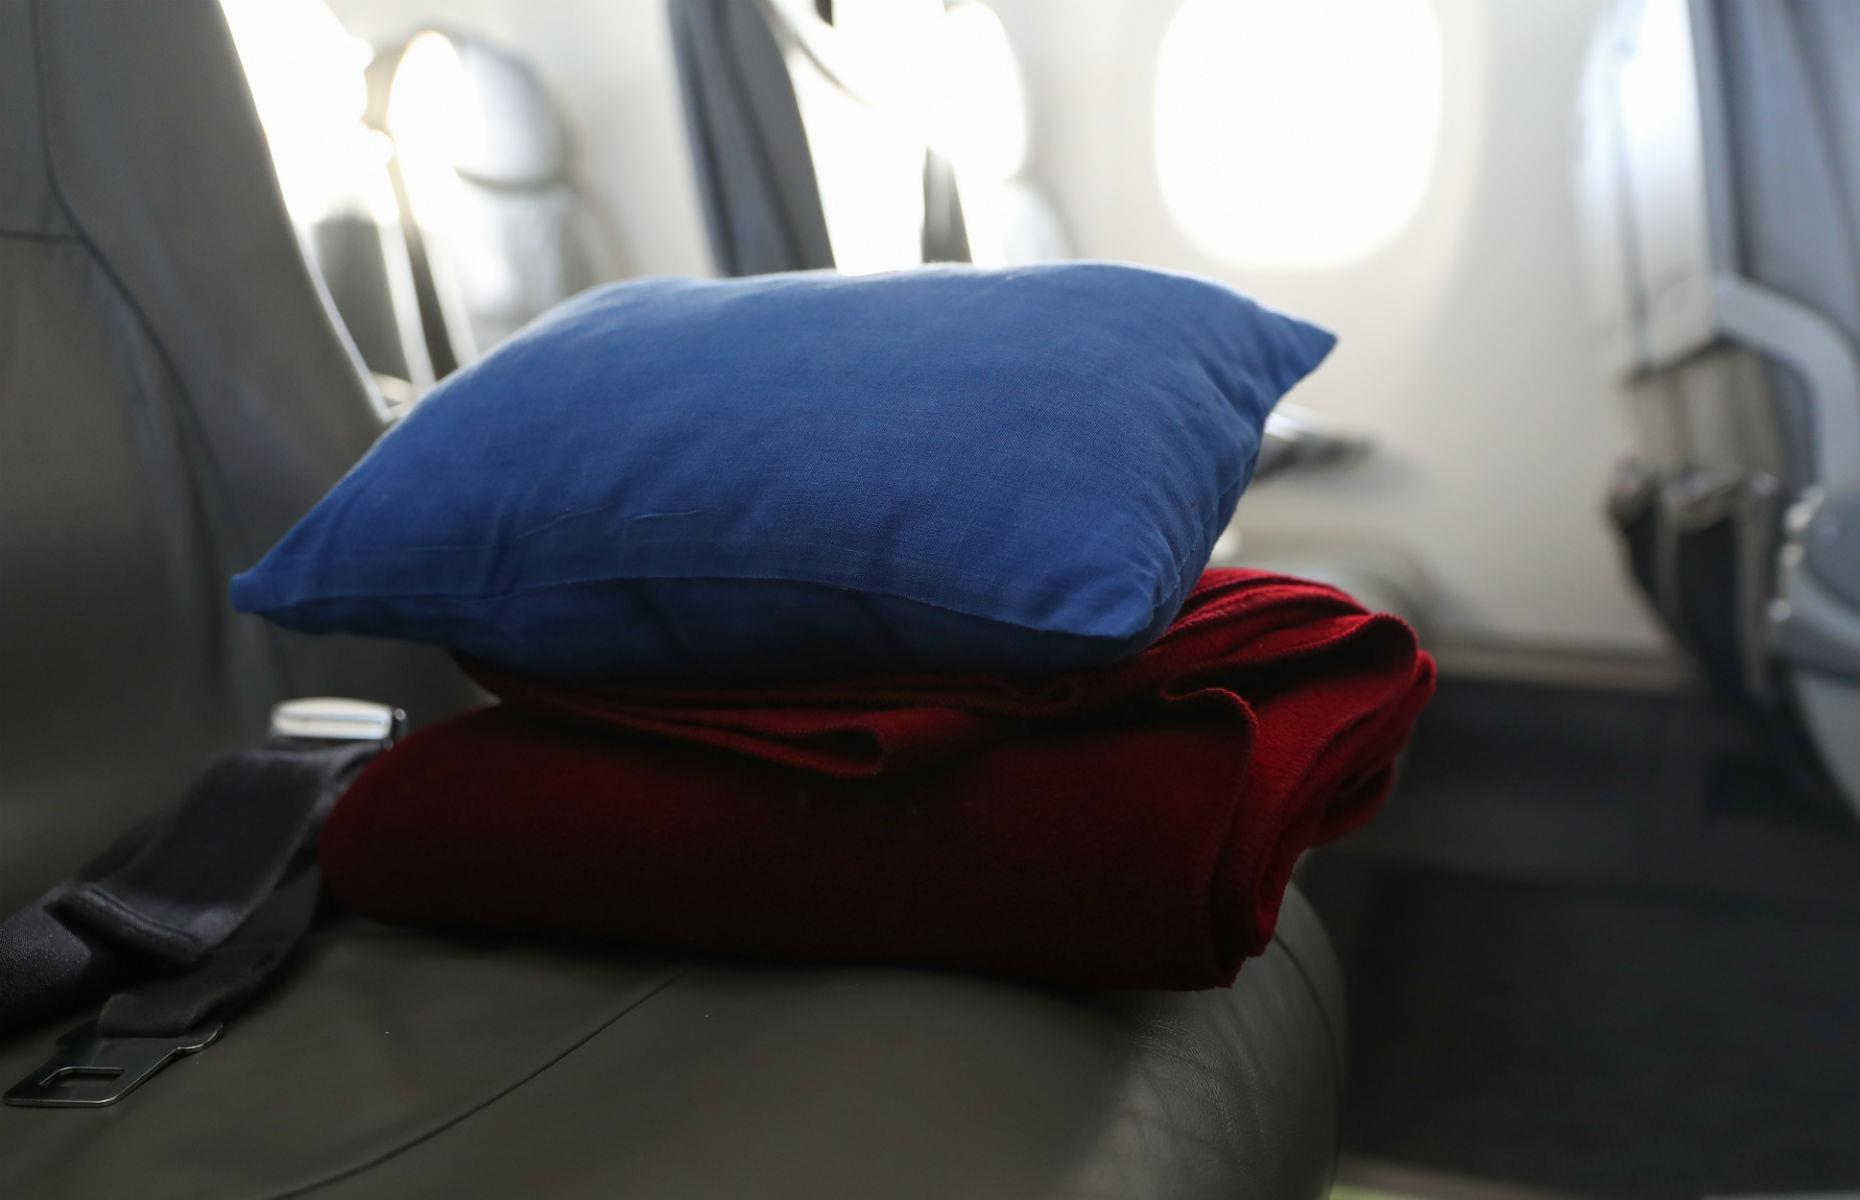 Slide 53 of 63: Apart from the obvious ones, such as seatbelts and oxygen masks, a plane is always fitted with nifty safety features. The cushions and blankets are flame-retardant and self-extinguishing, and there are lights close to the floor in case there's a fire and you need to see while you crawl to safety. As for your plane, twin-engine jets are designed to operate safely even if one engine fails.